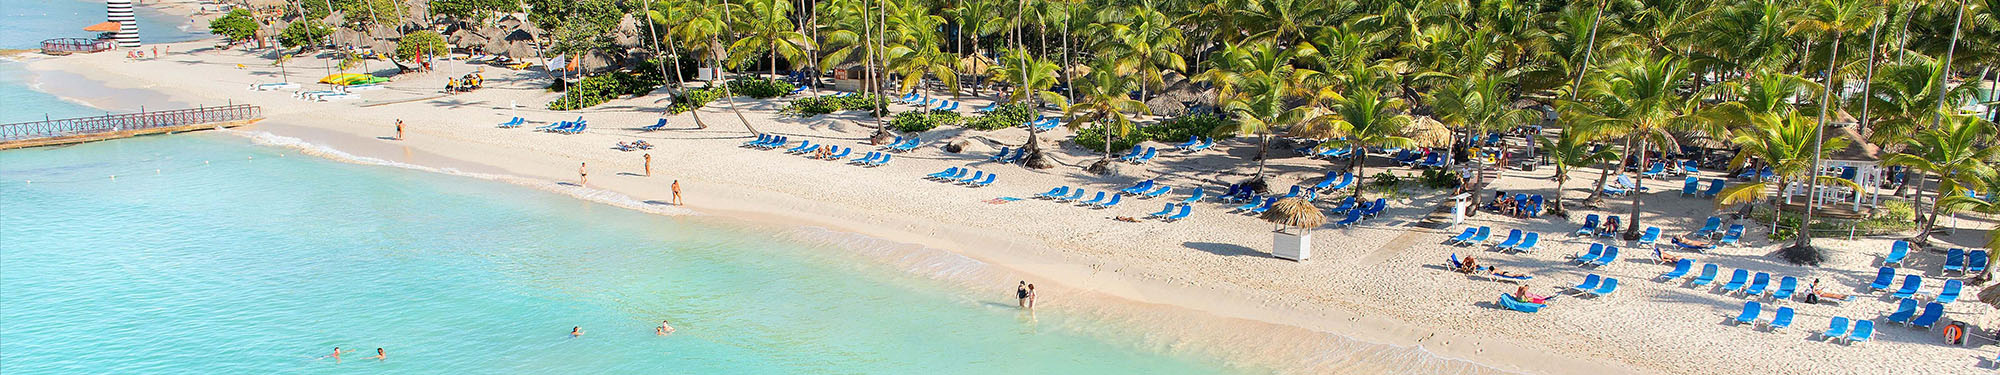 Tours in Bayahibe